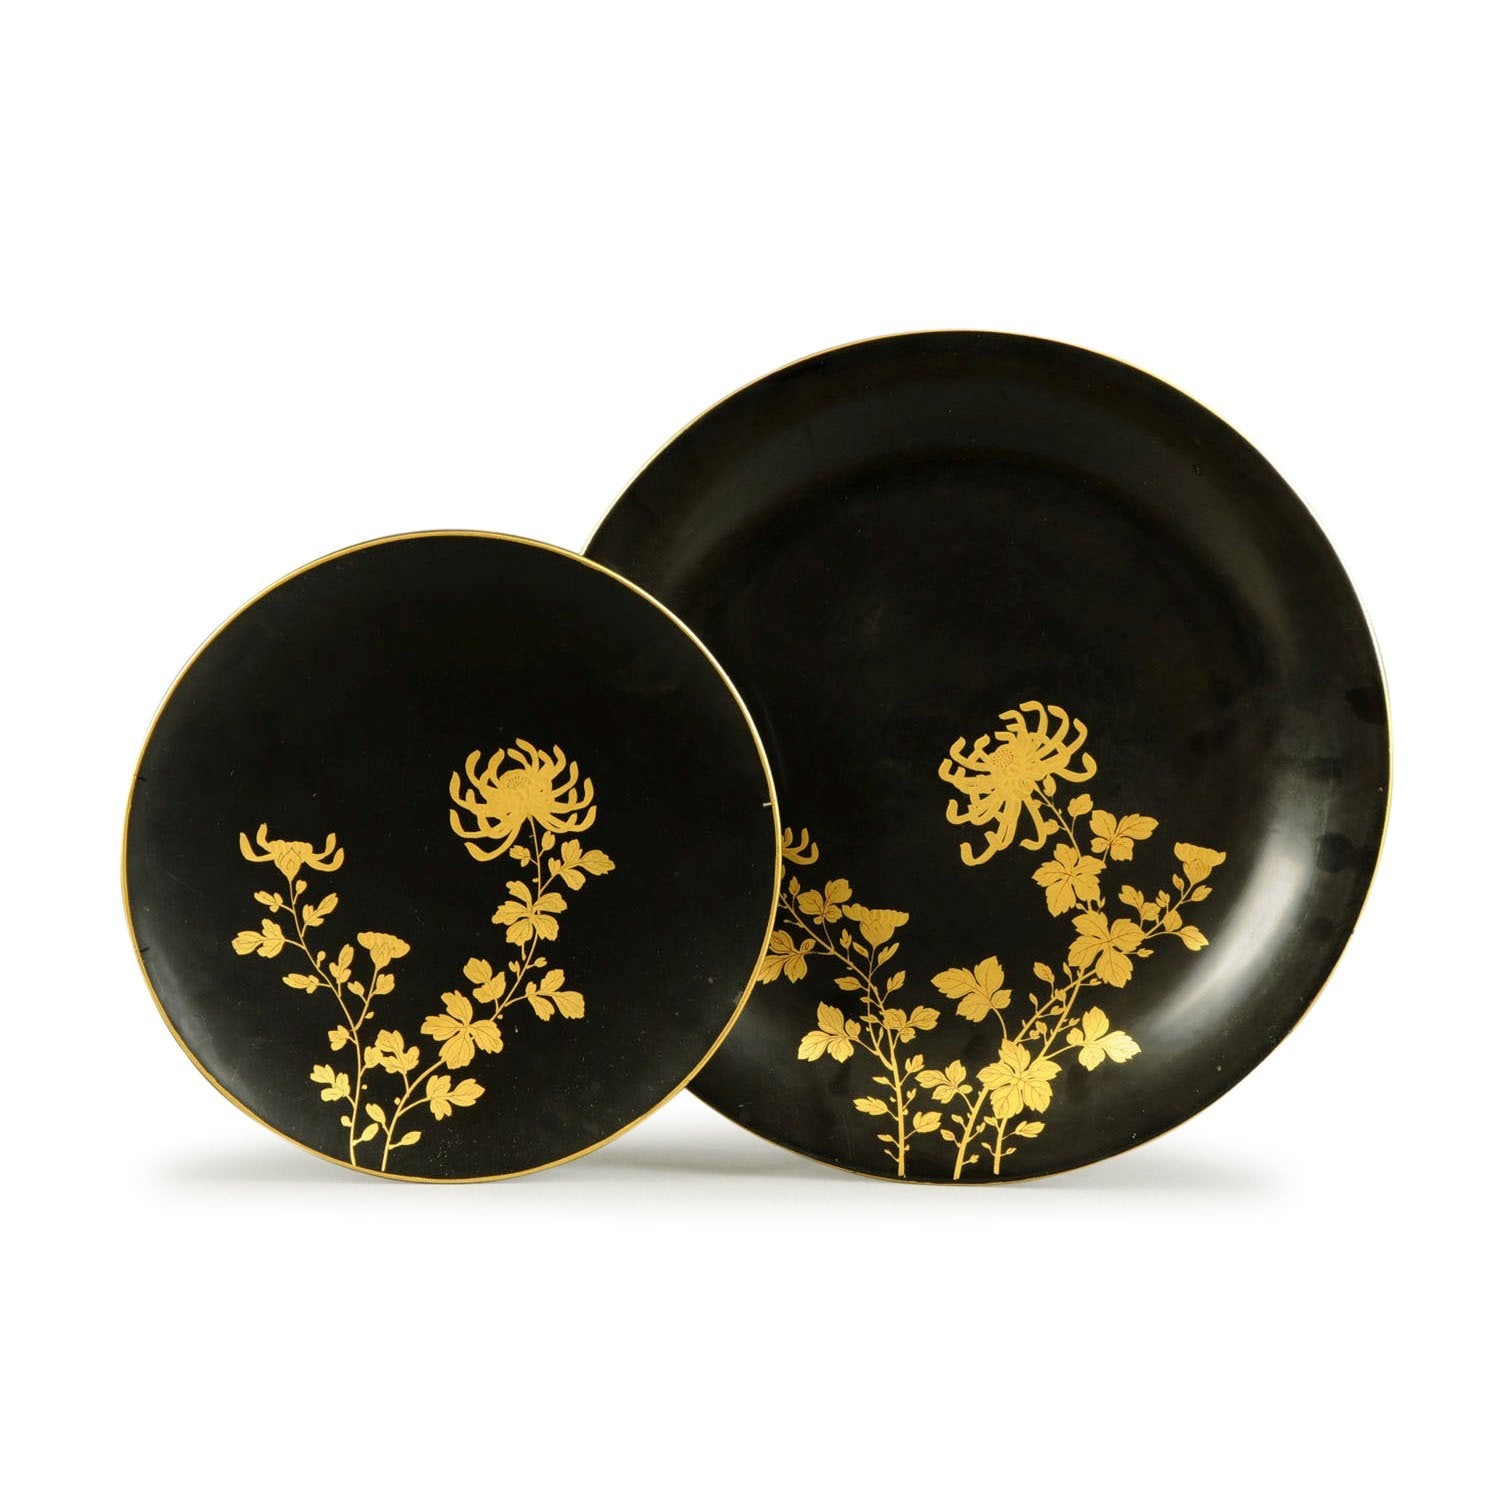 Two Gilded Black Lacquer Plates - Chrysanthemums - ca 1930 - 30 cms dia & 40 cms dia - M360